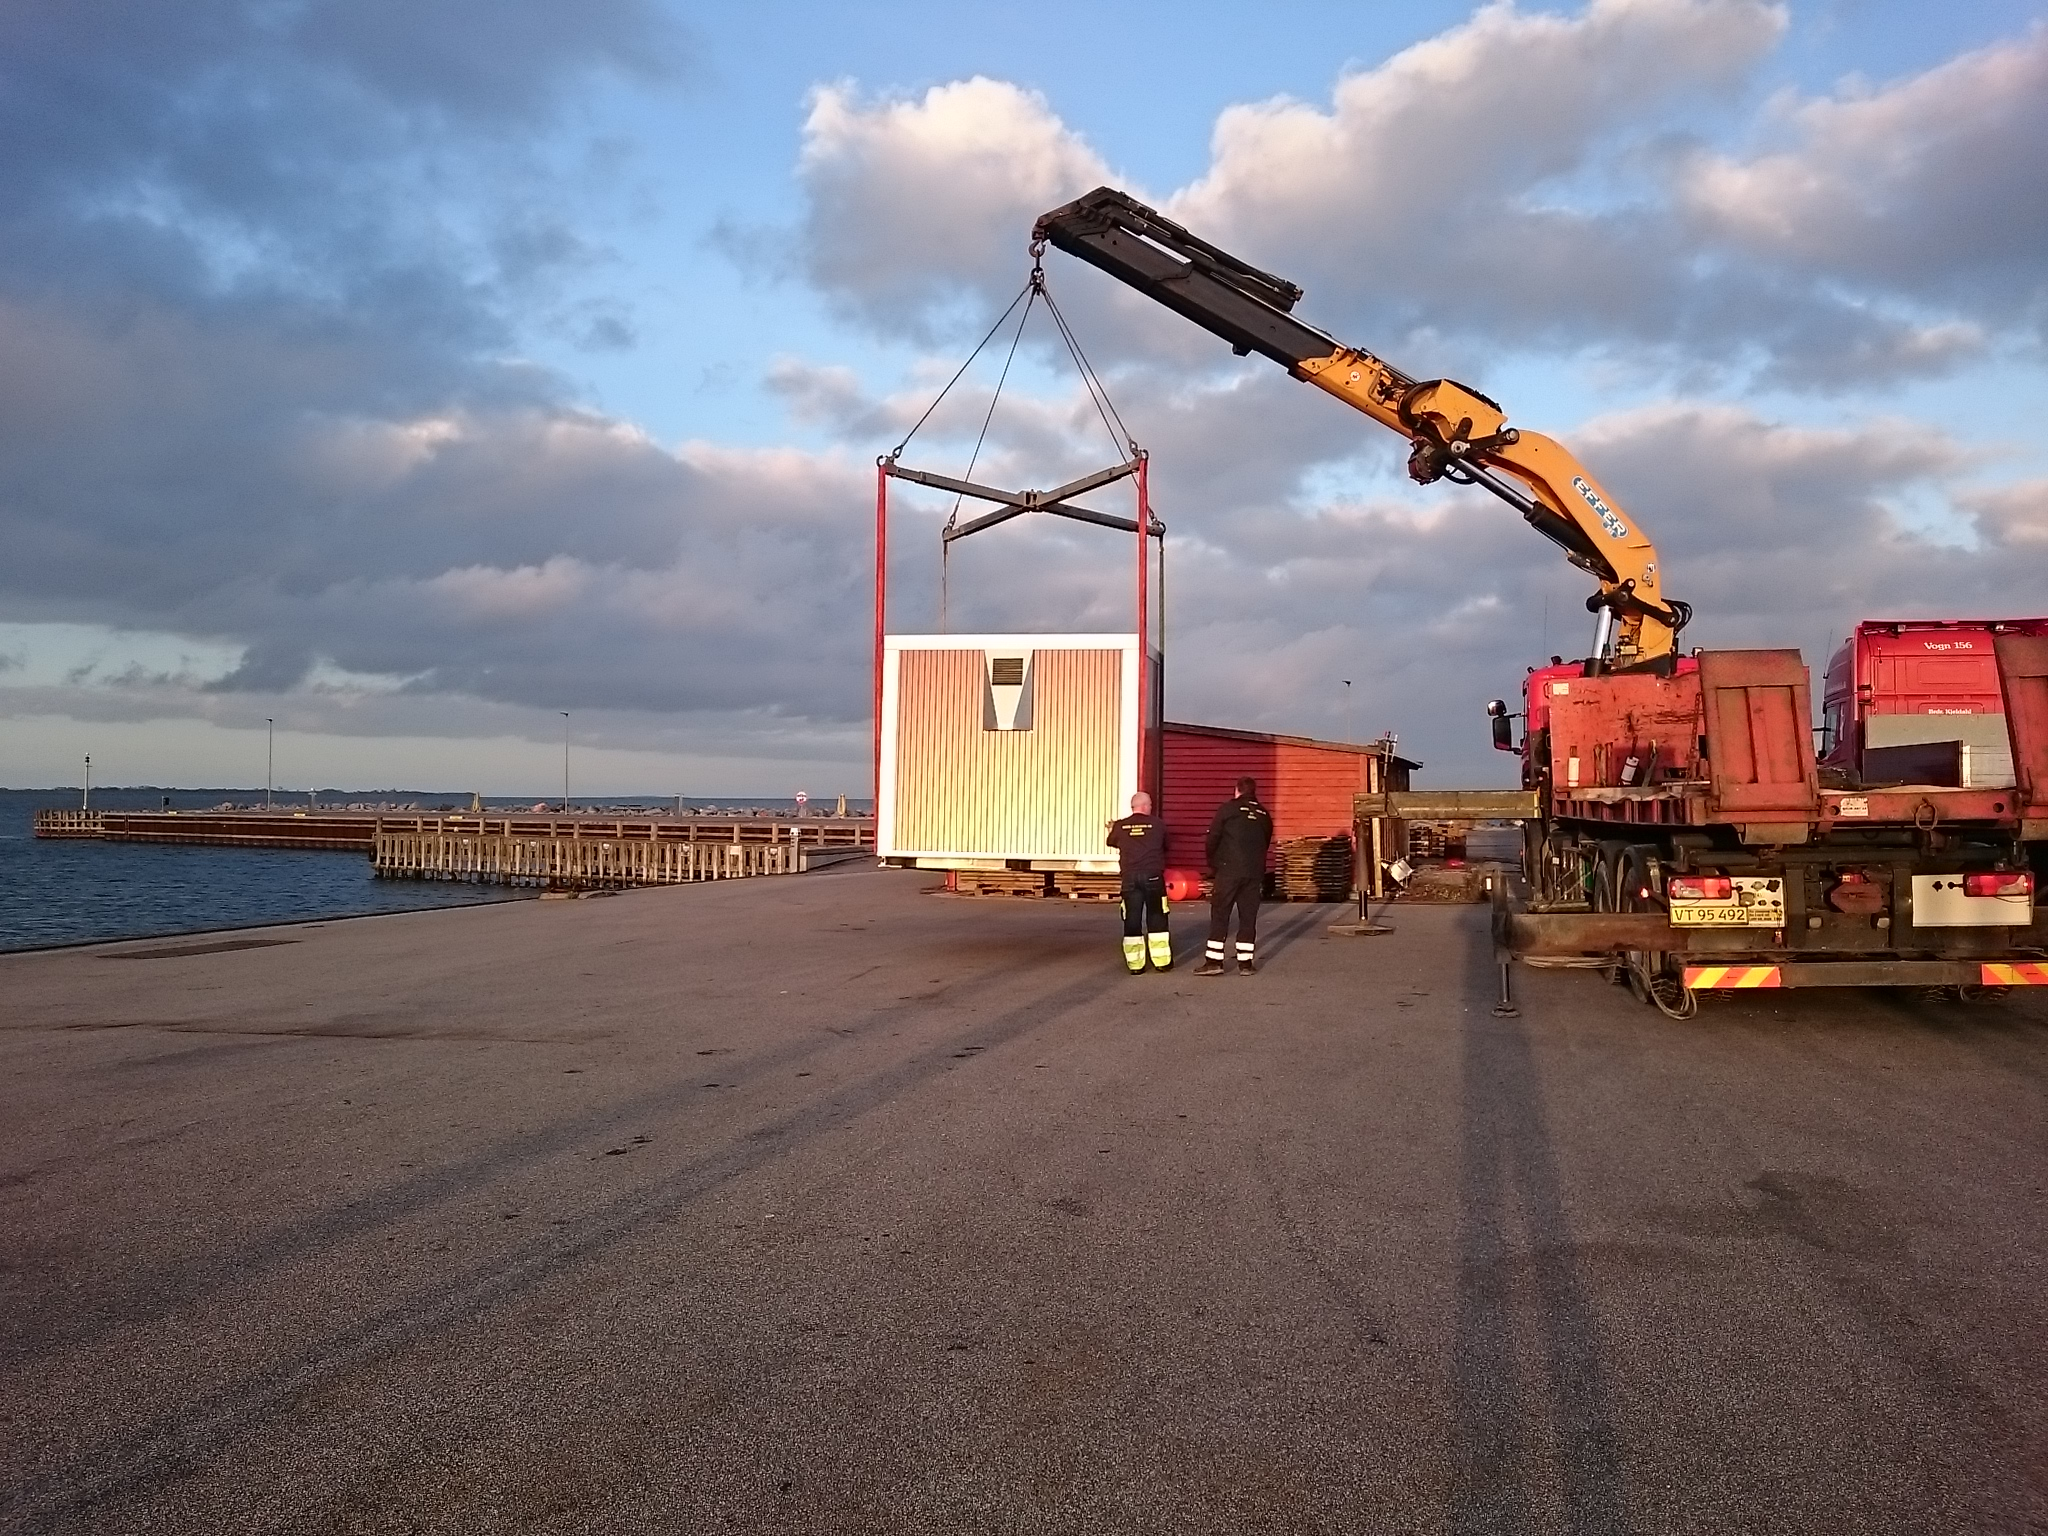 A cabin arrives at Ballen marina, Samso, for housing a battery system (Lithium Balance 240 kWh)